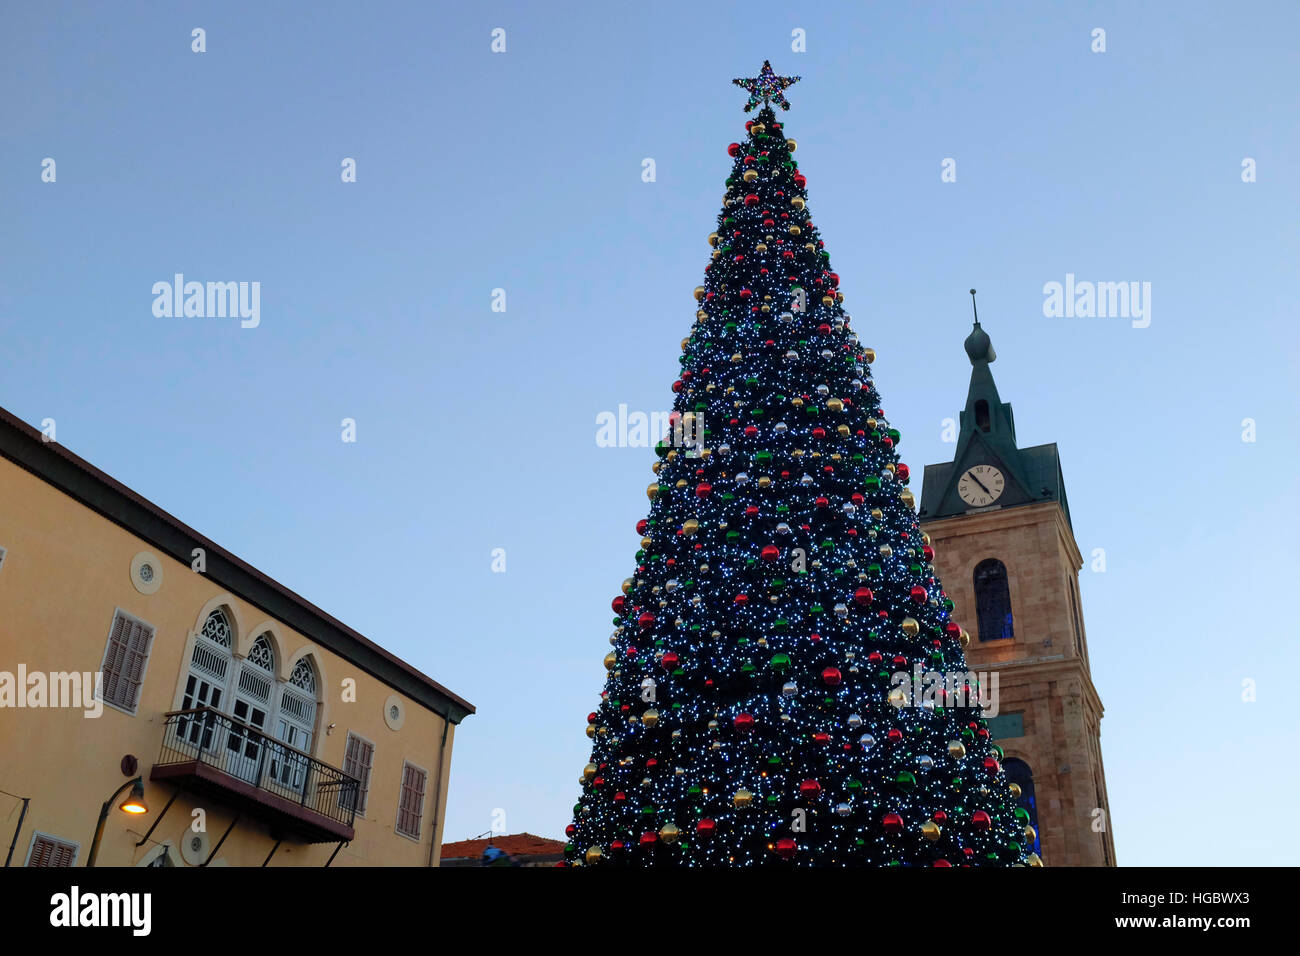 Giant Decorated Christmas Tree In Stockfotos & Giant Decorated ...